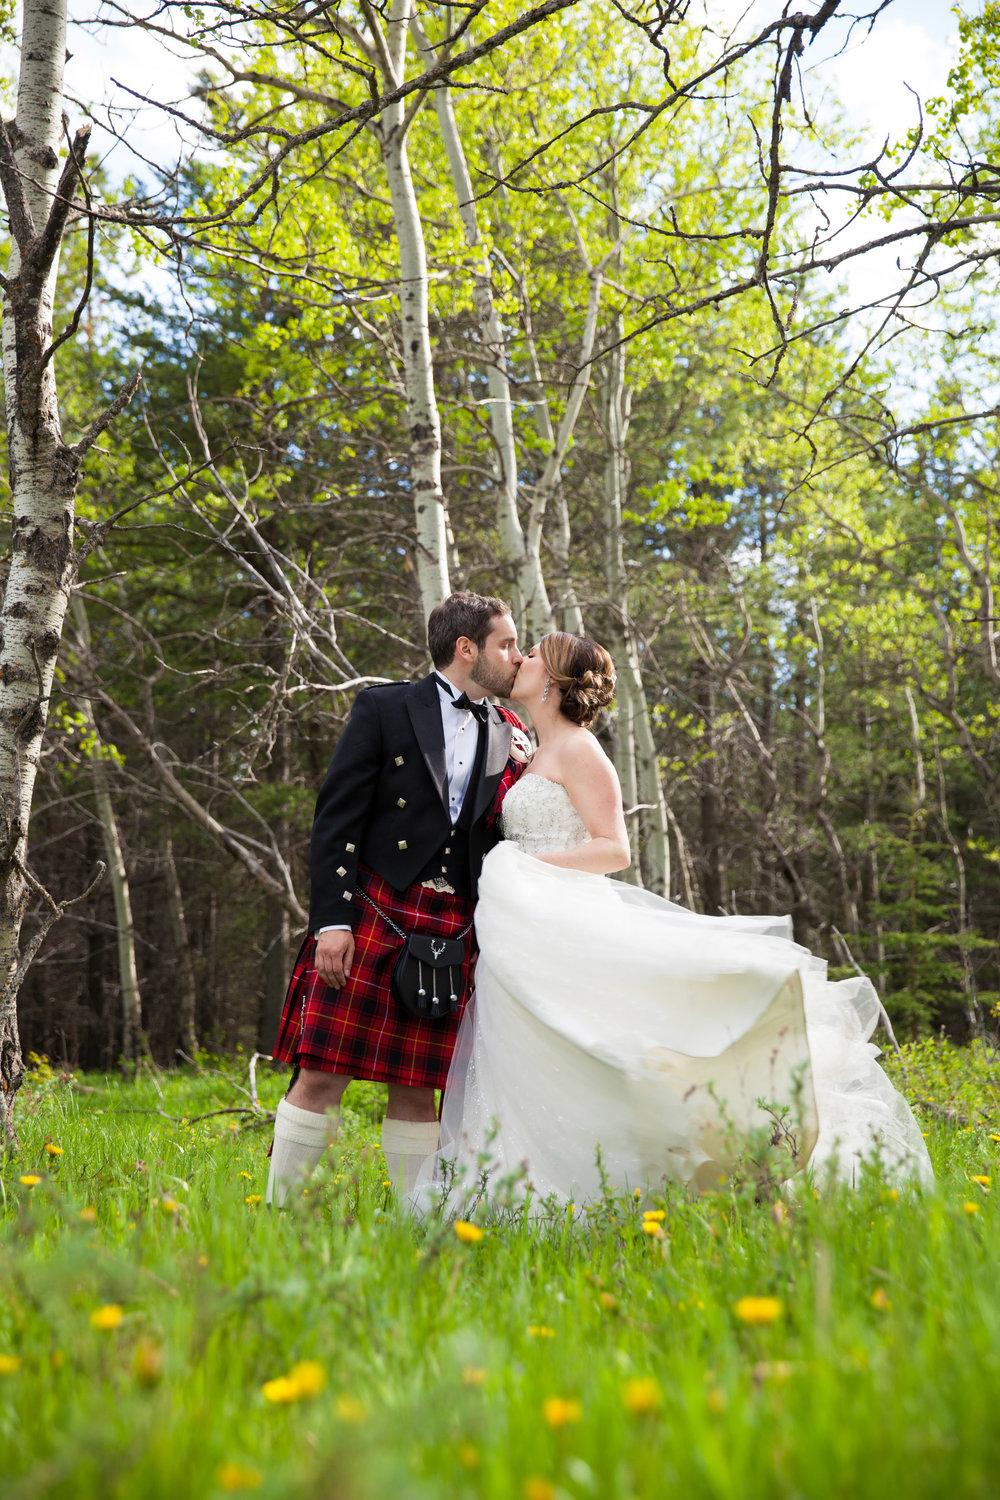 Copy of Chasing Autumn Photography - Medicine Hat Photography, Beaver Sabotages Wedding, Alberta Wedding, Cypress Hills Wedding Photography, Saskatchewan Wedding Photographer, Scottish Wedding